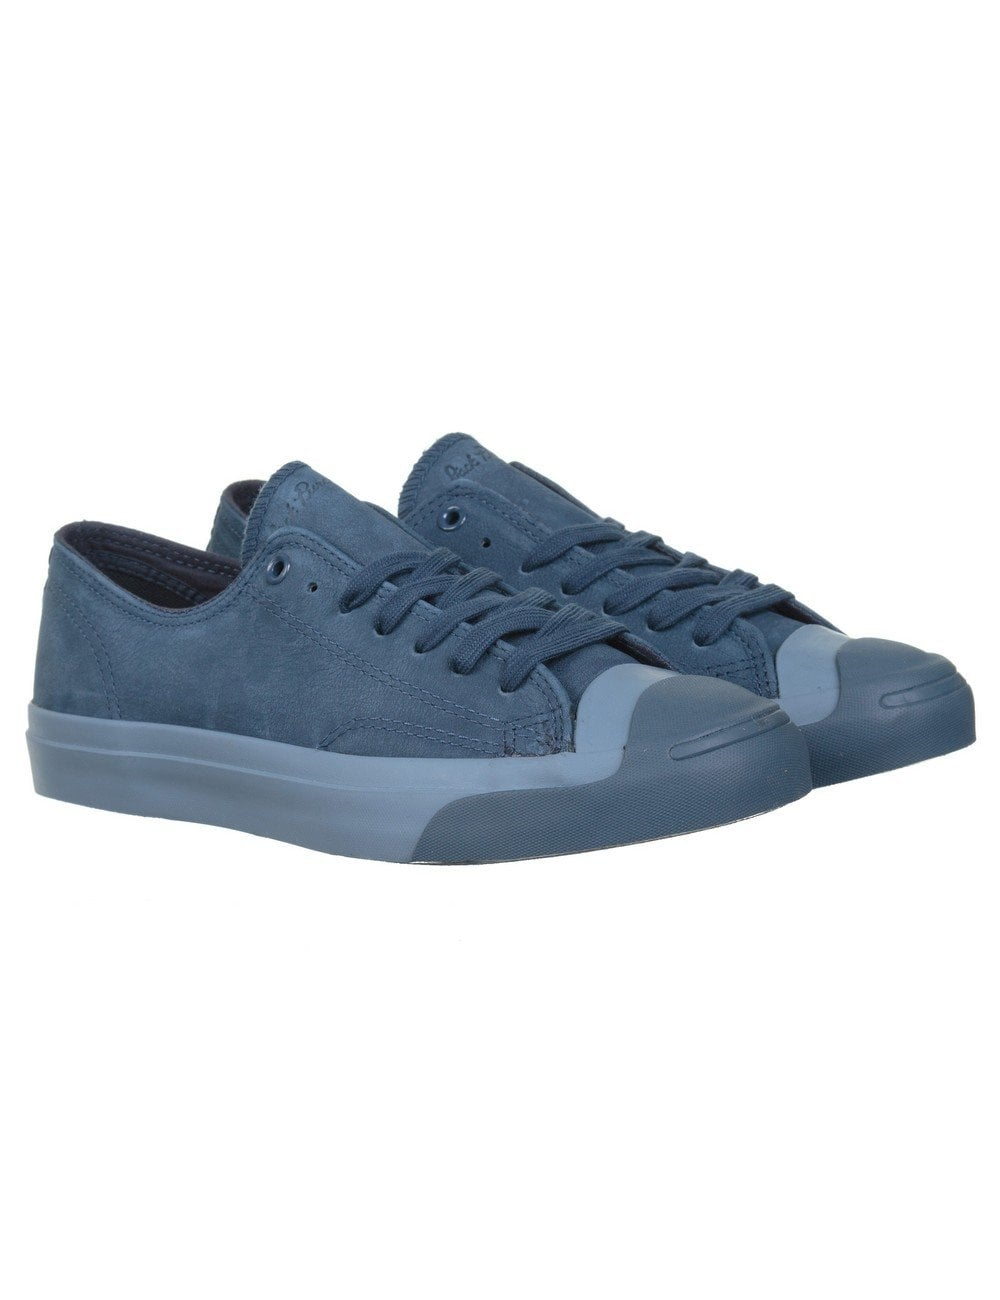 c3ca68aa8054 Converse Jack Purcell Jack Ox Shoes - Navy Navy - Footwear from Fat ...